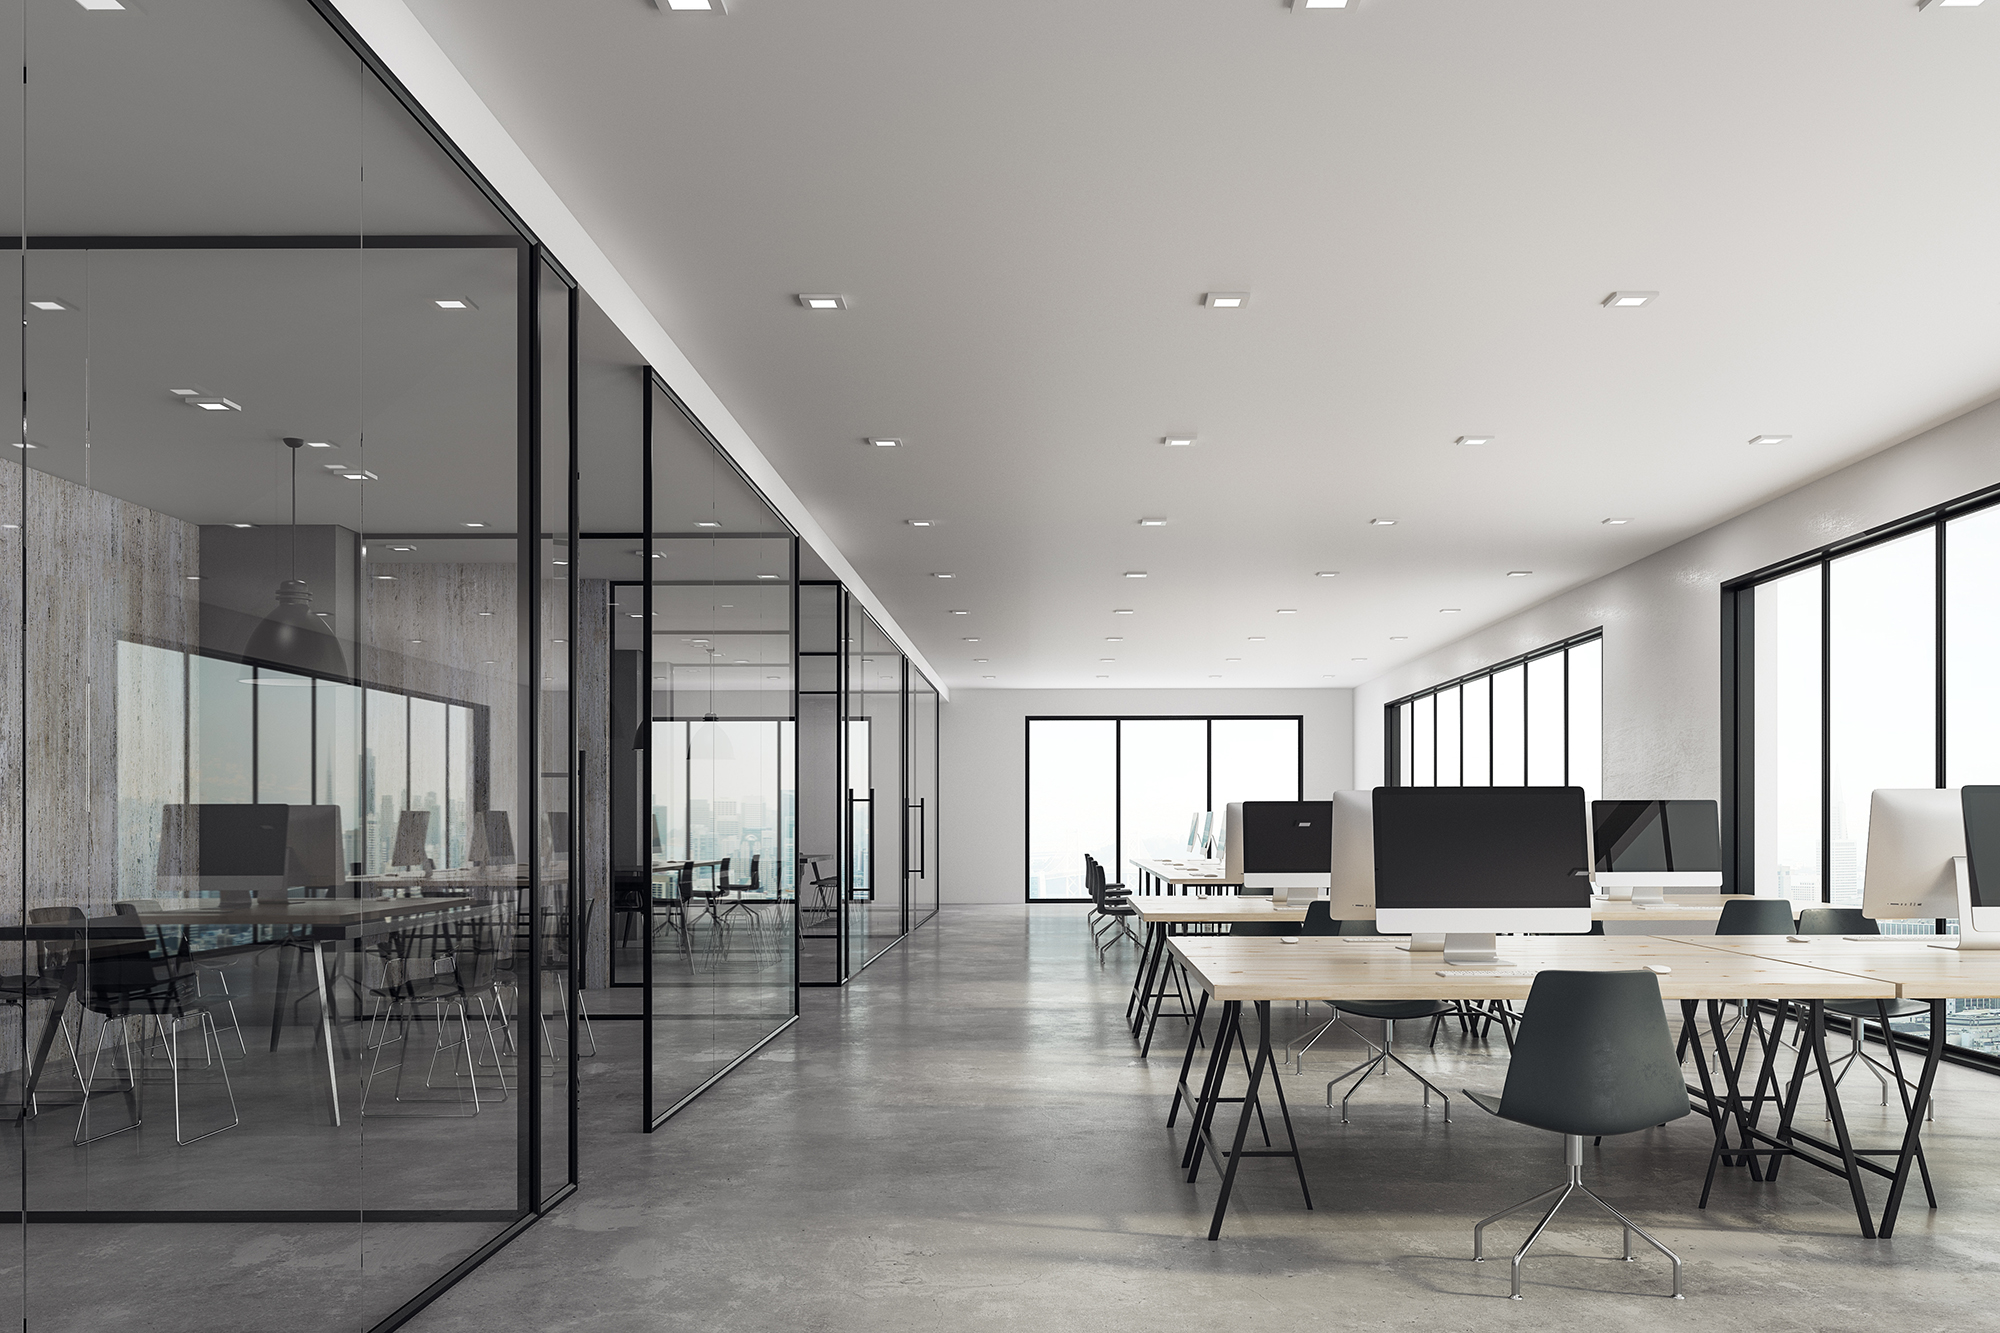 Bright coworking glass office interior. 3D Rendering